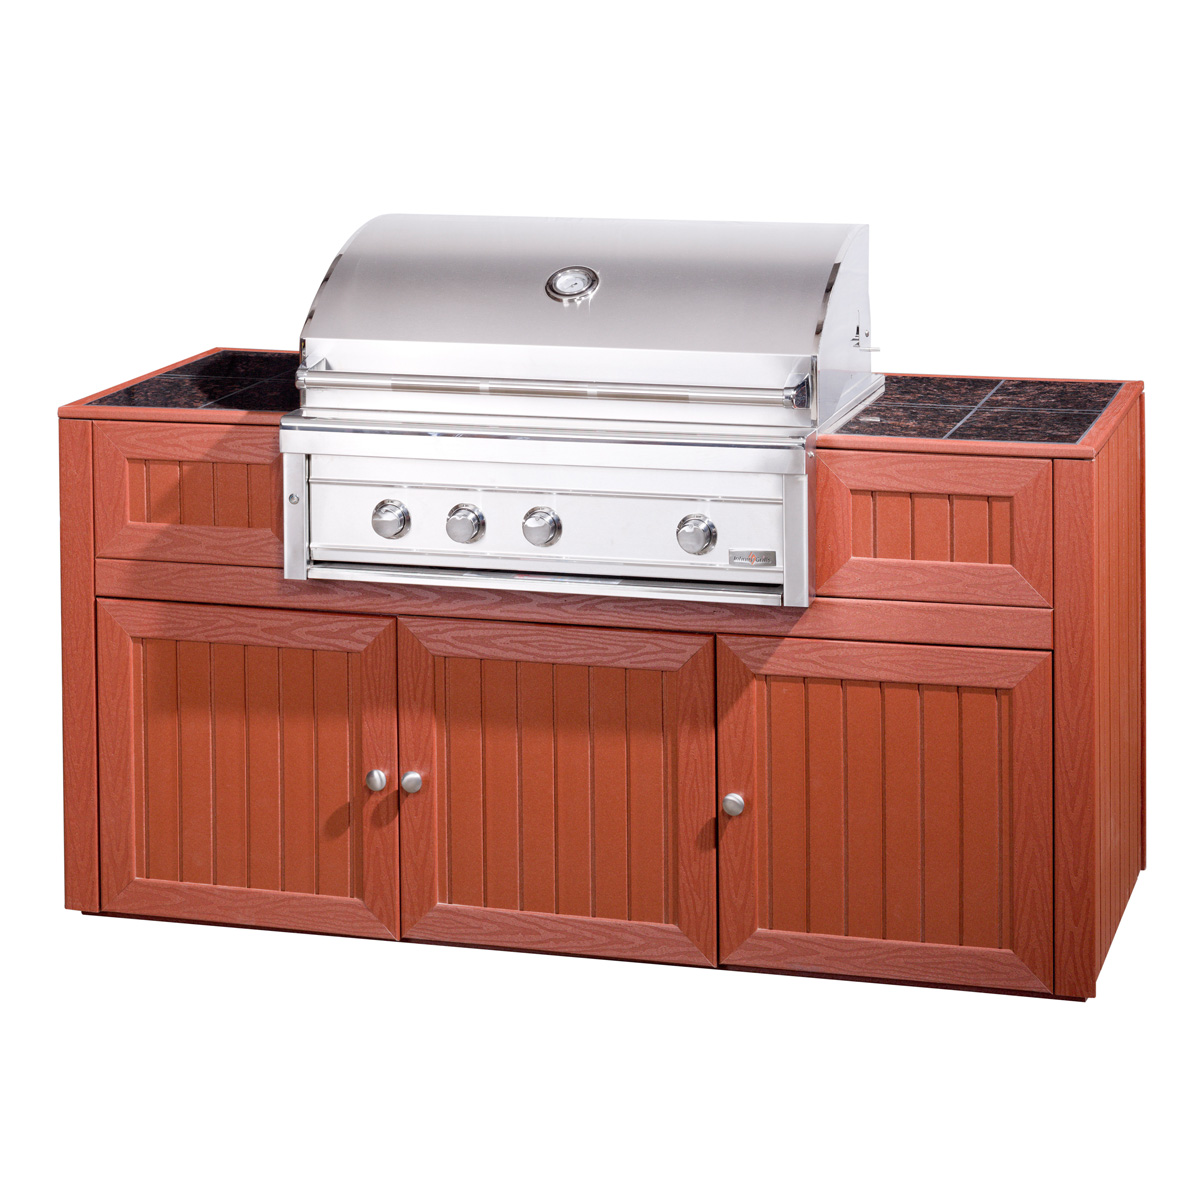 Grill cabinet odk900 garden spas pool for Garden spas pool germantown tn